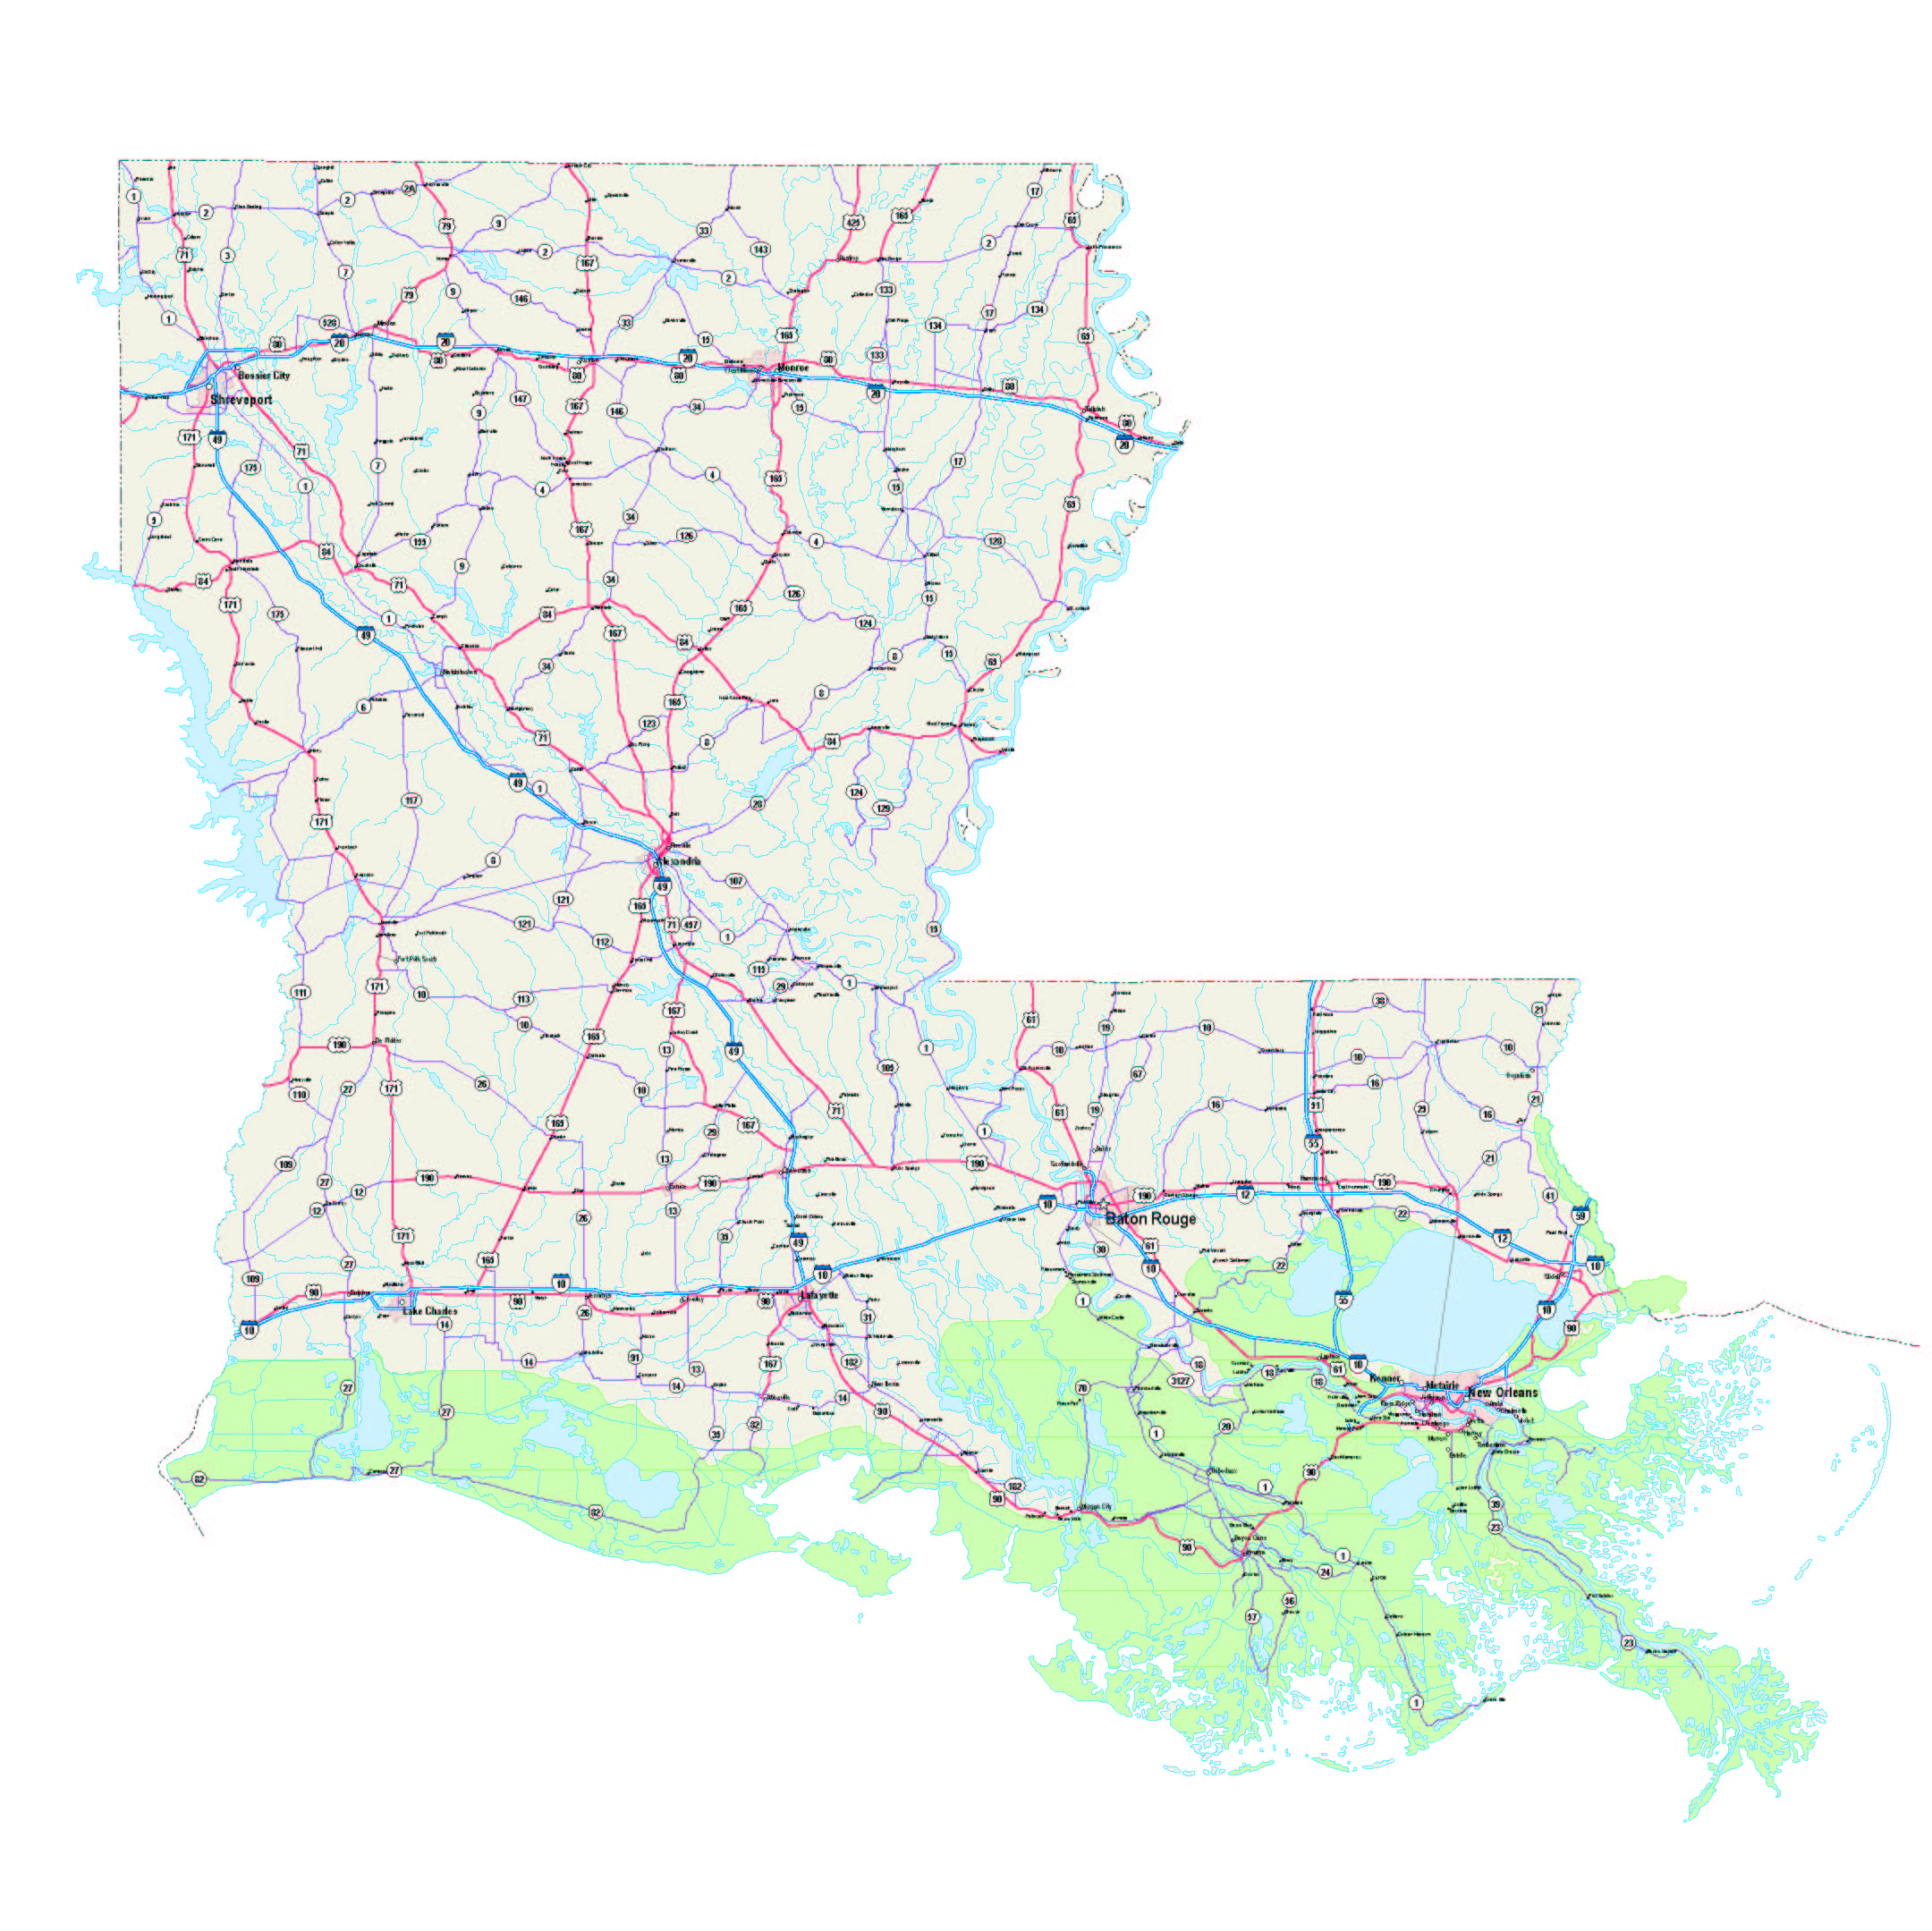 Louisiana Map - Louisiana Maps - Louisiana Road Map - Louisiana ...